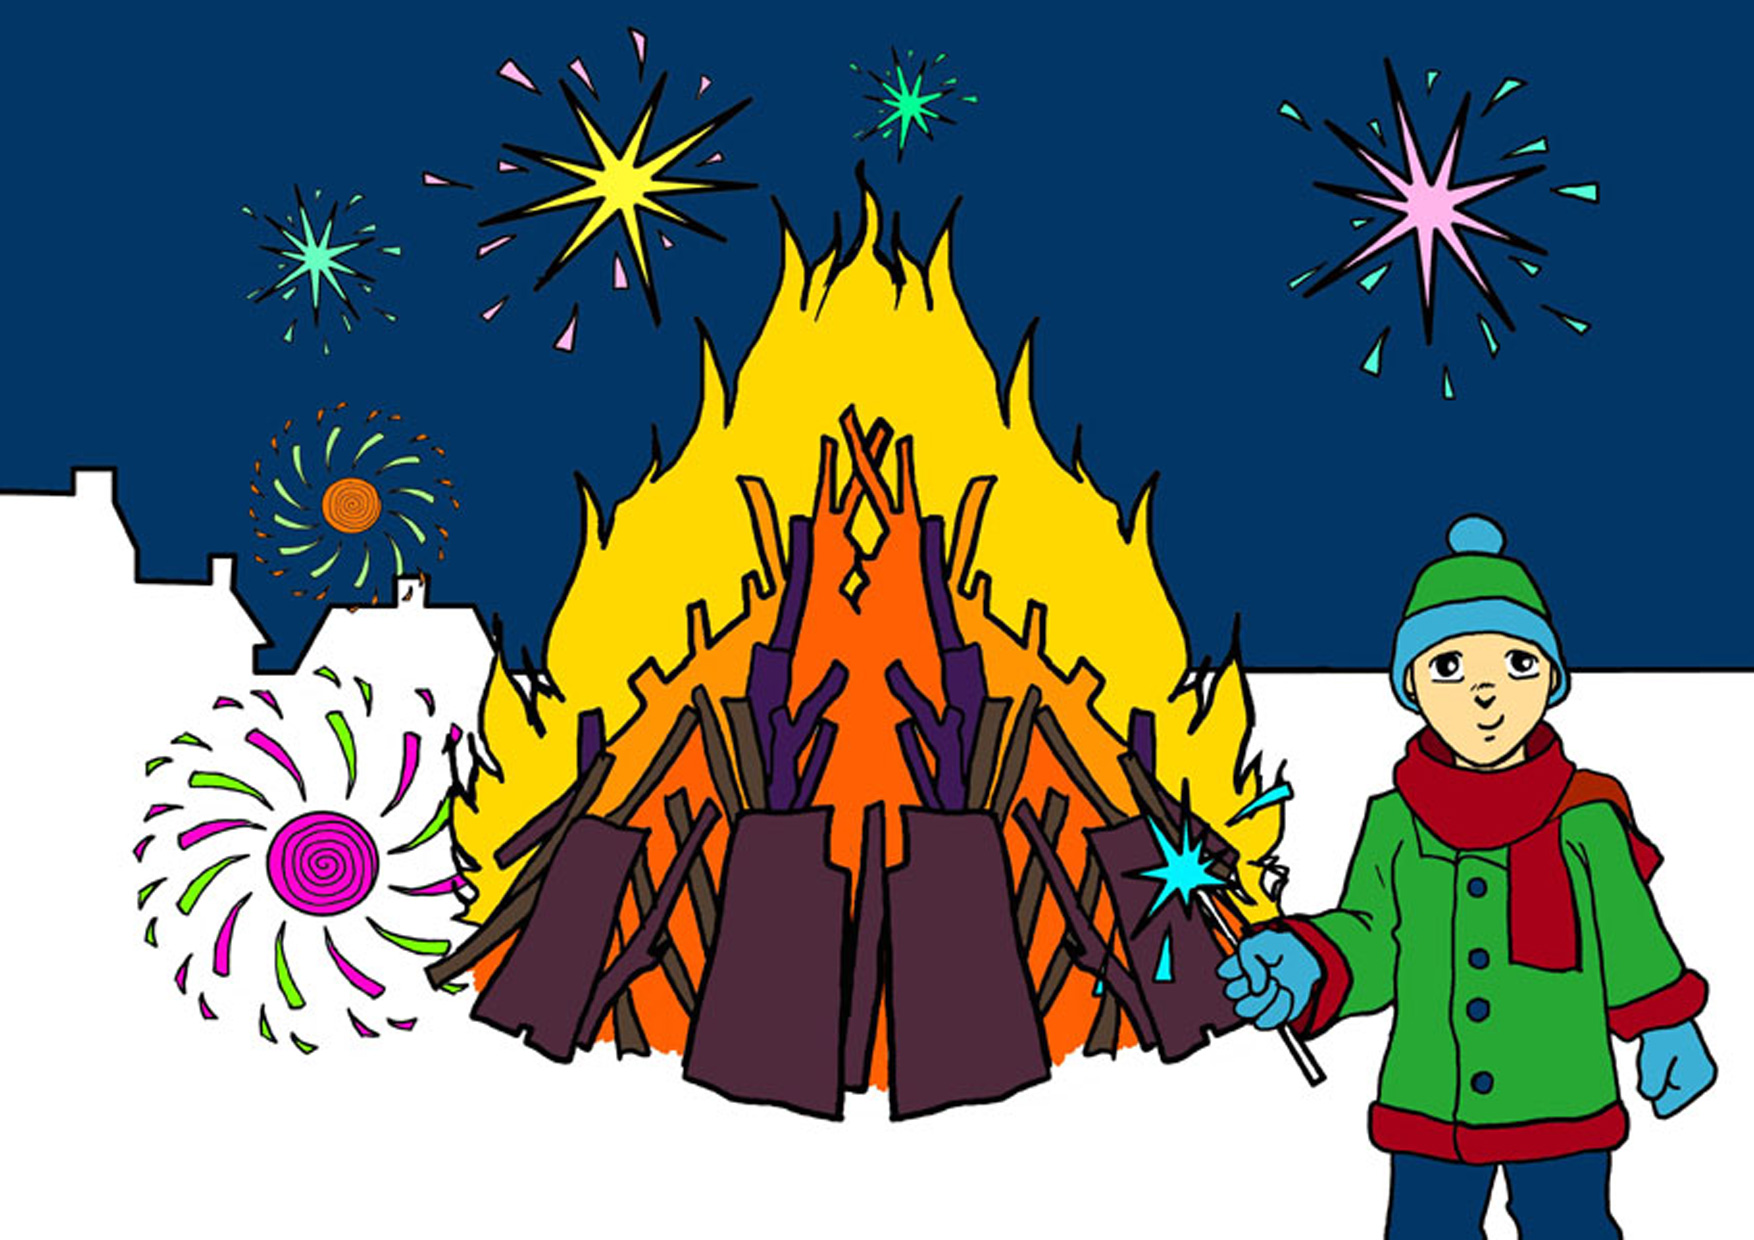 Bonfire with kids clipart clip art royalty free library Kids and bonfire clipart - ClipartFest clip art royalty free library